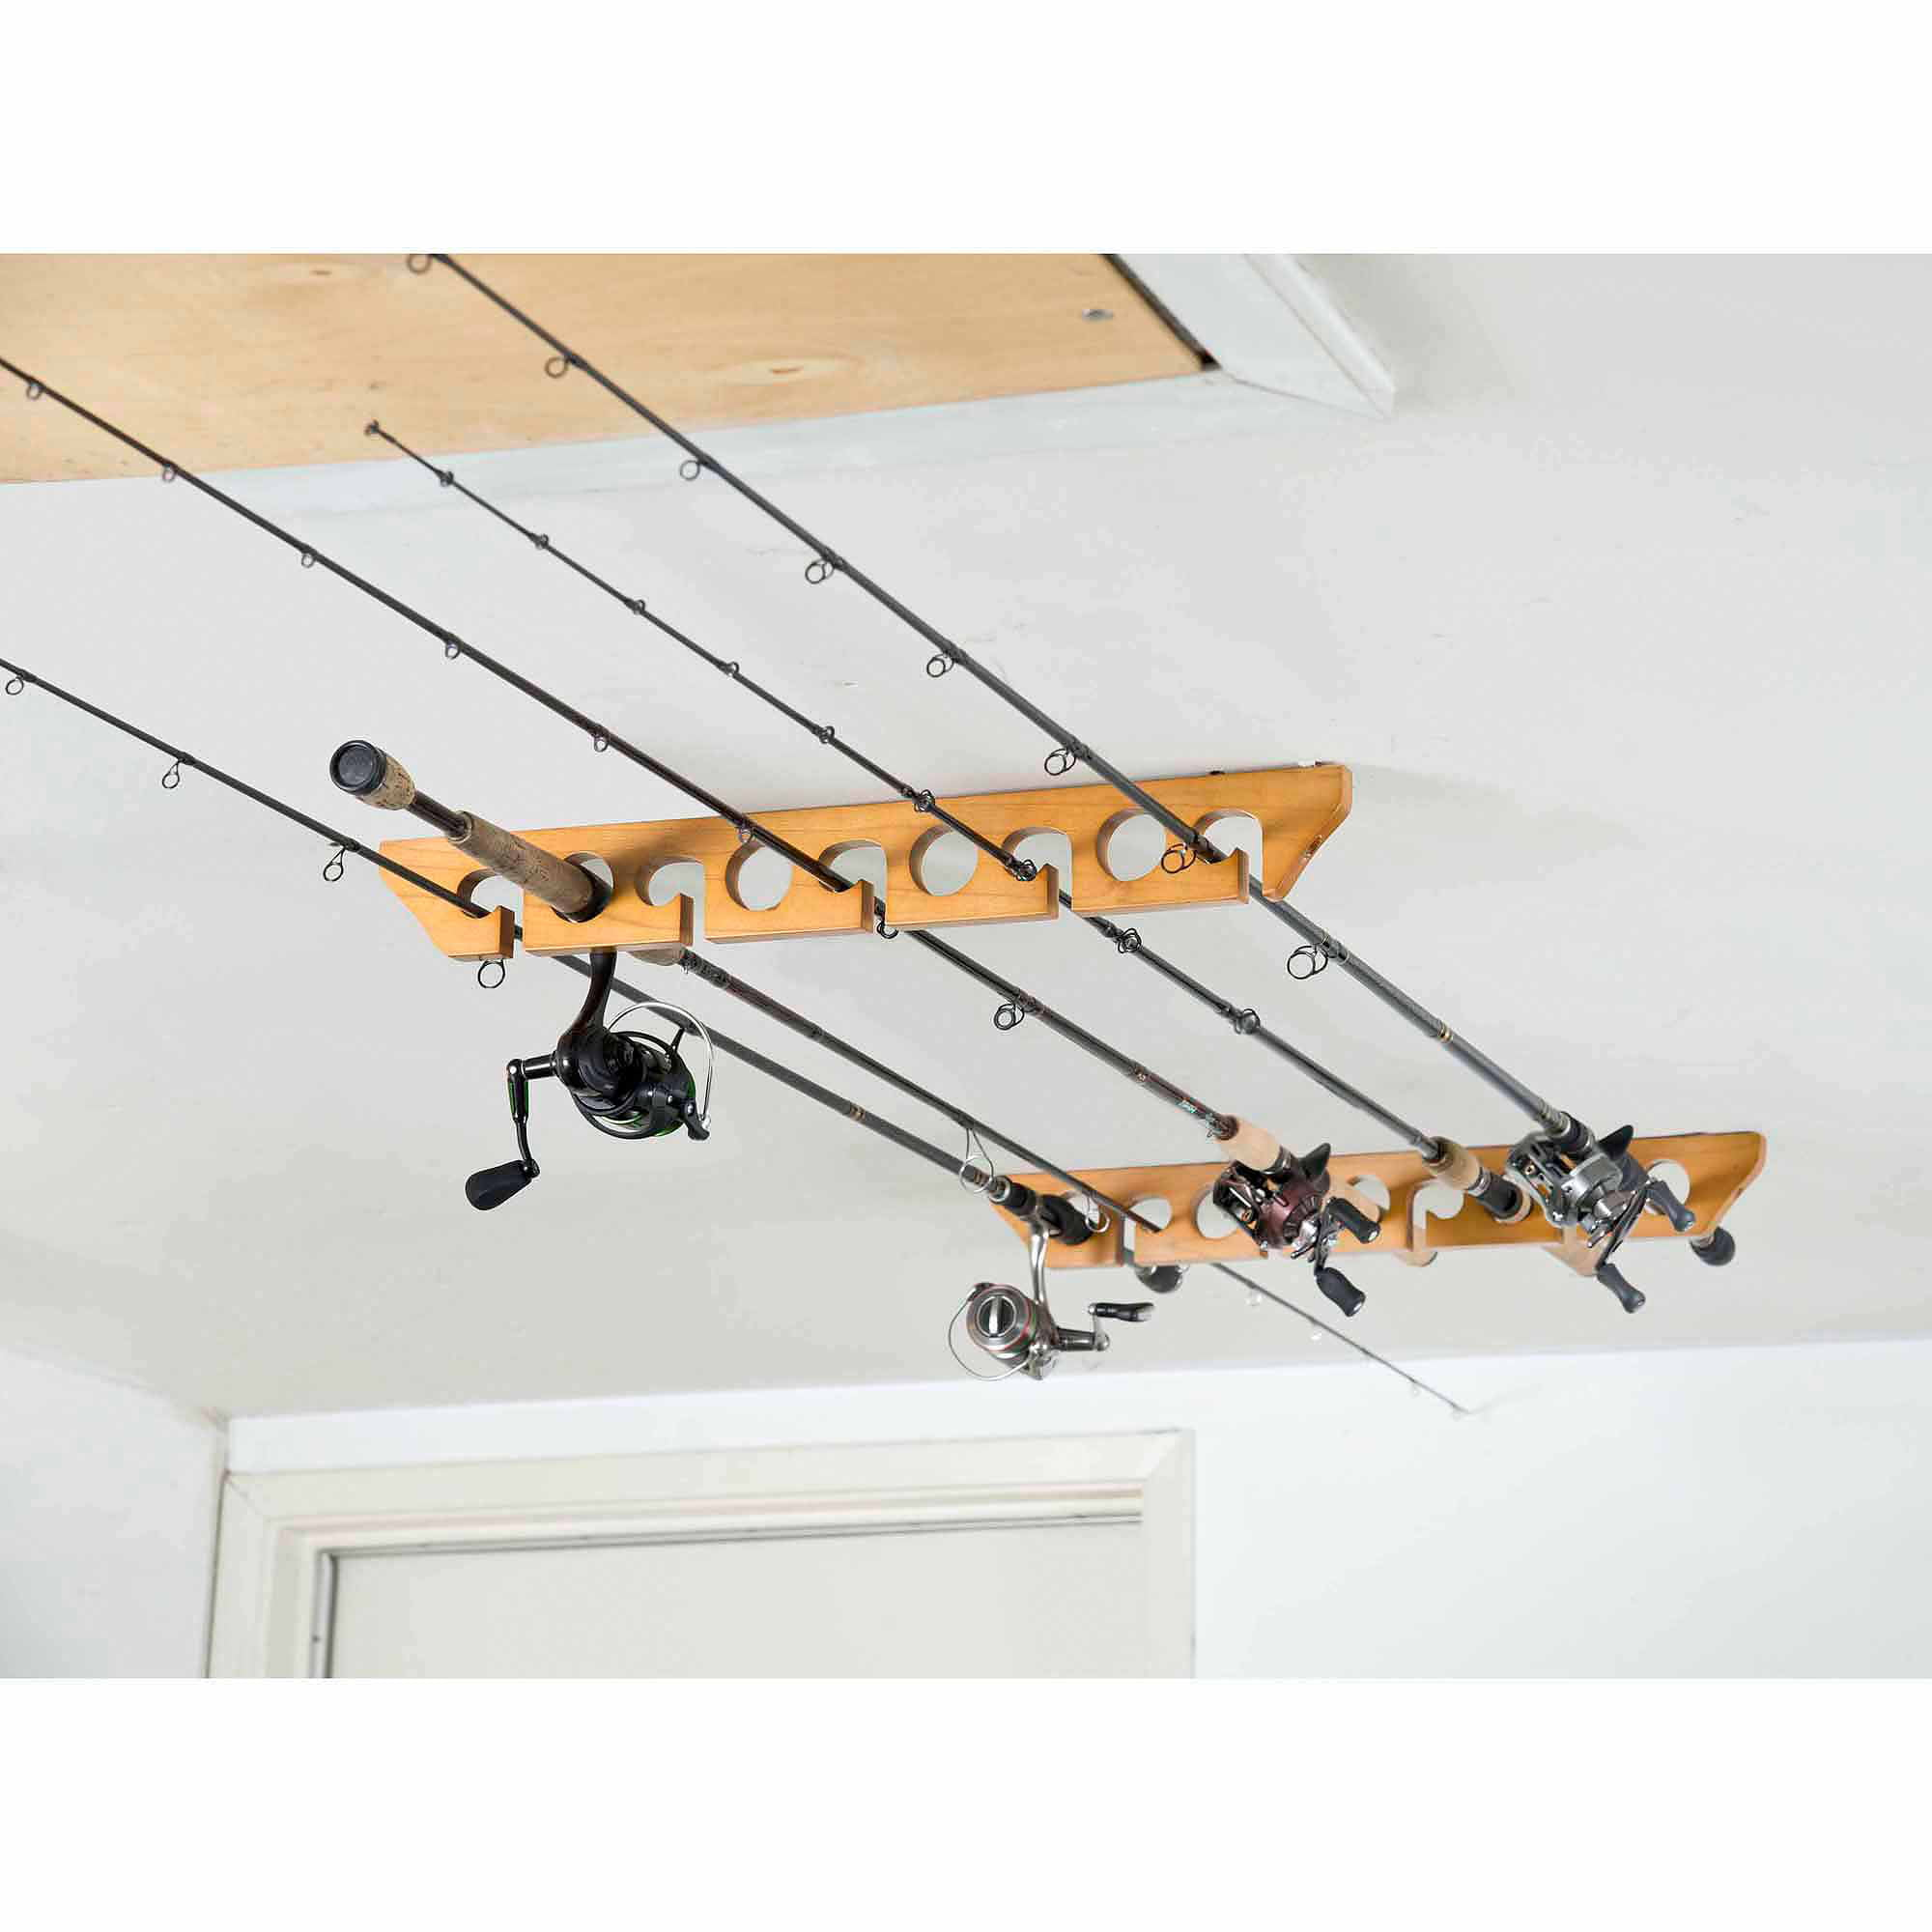 Organized Fishing Wooden Ceiling Horizontal Rod Rack 9 Capacity